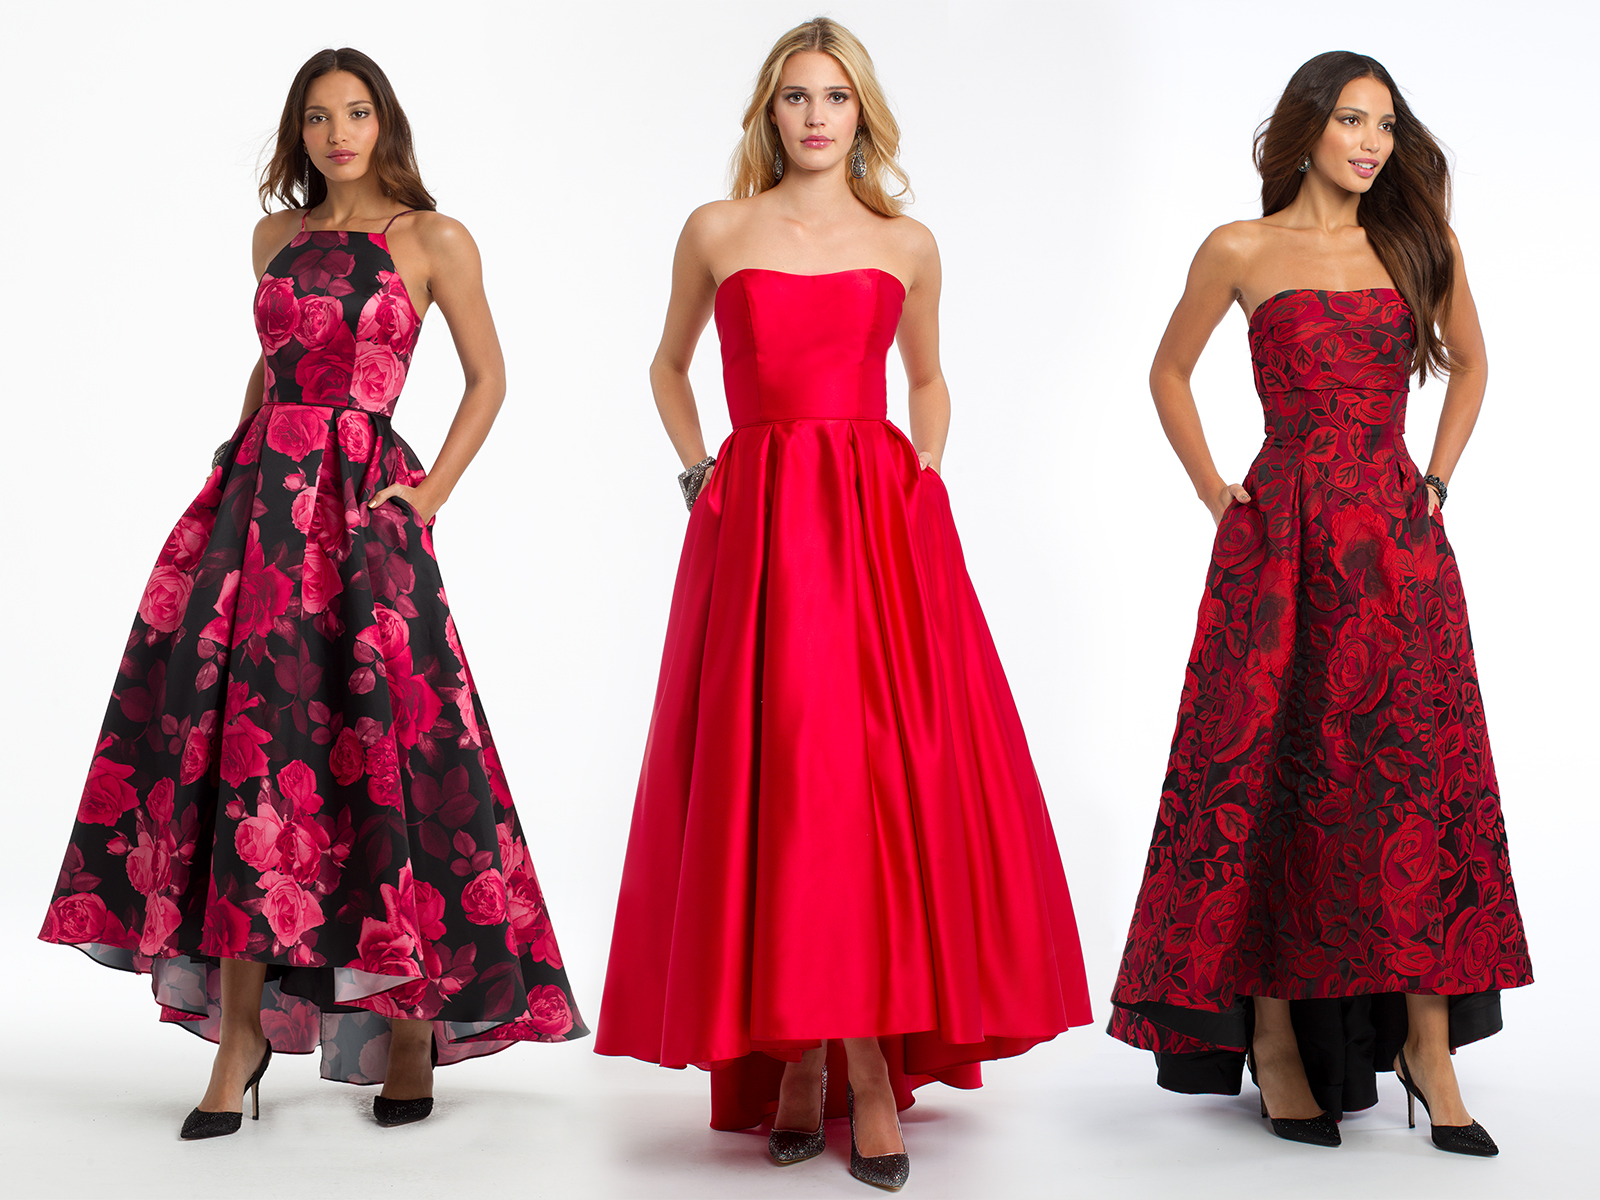 Find a High-Low Dress For Your Next Wedding | Camille La Vie